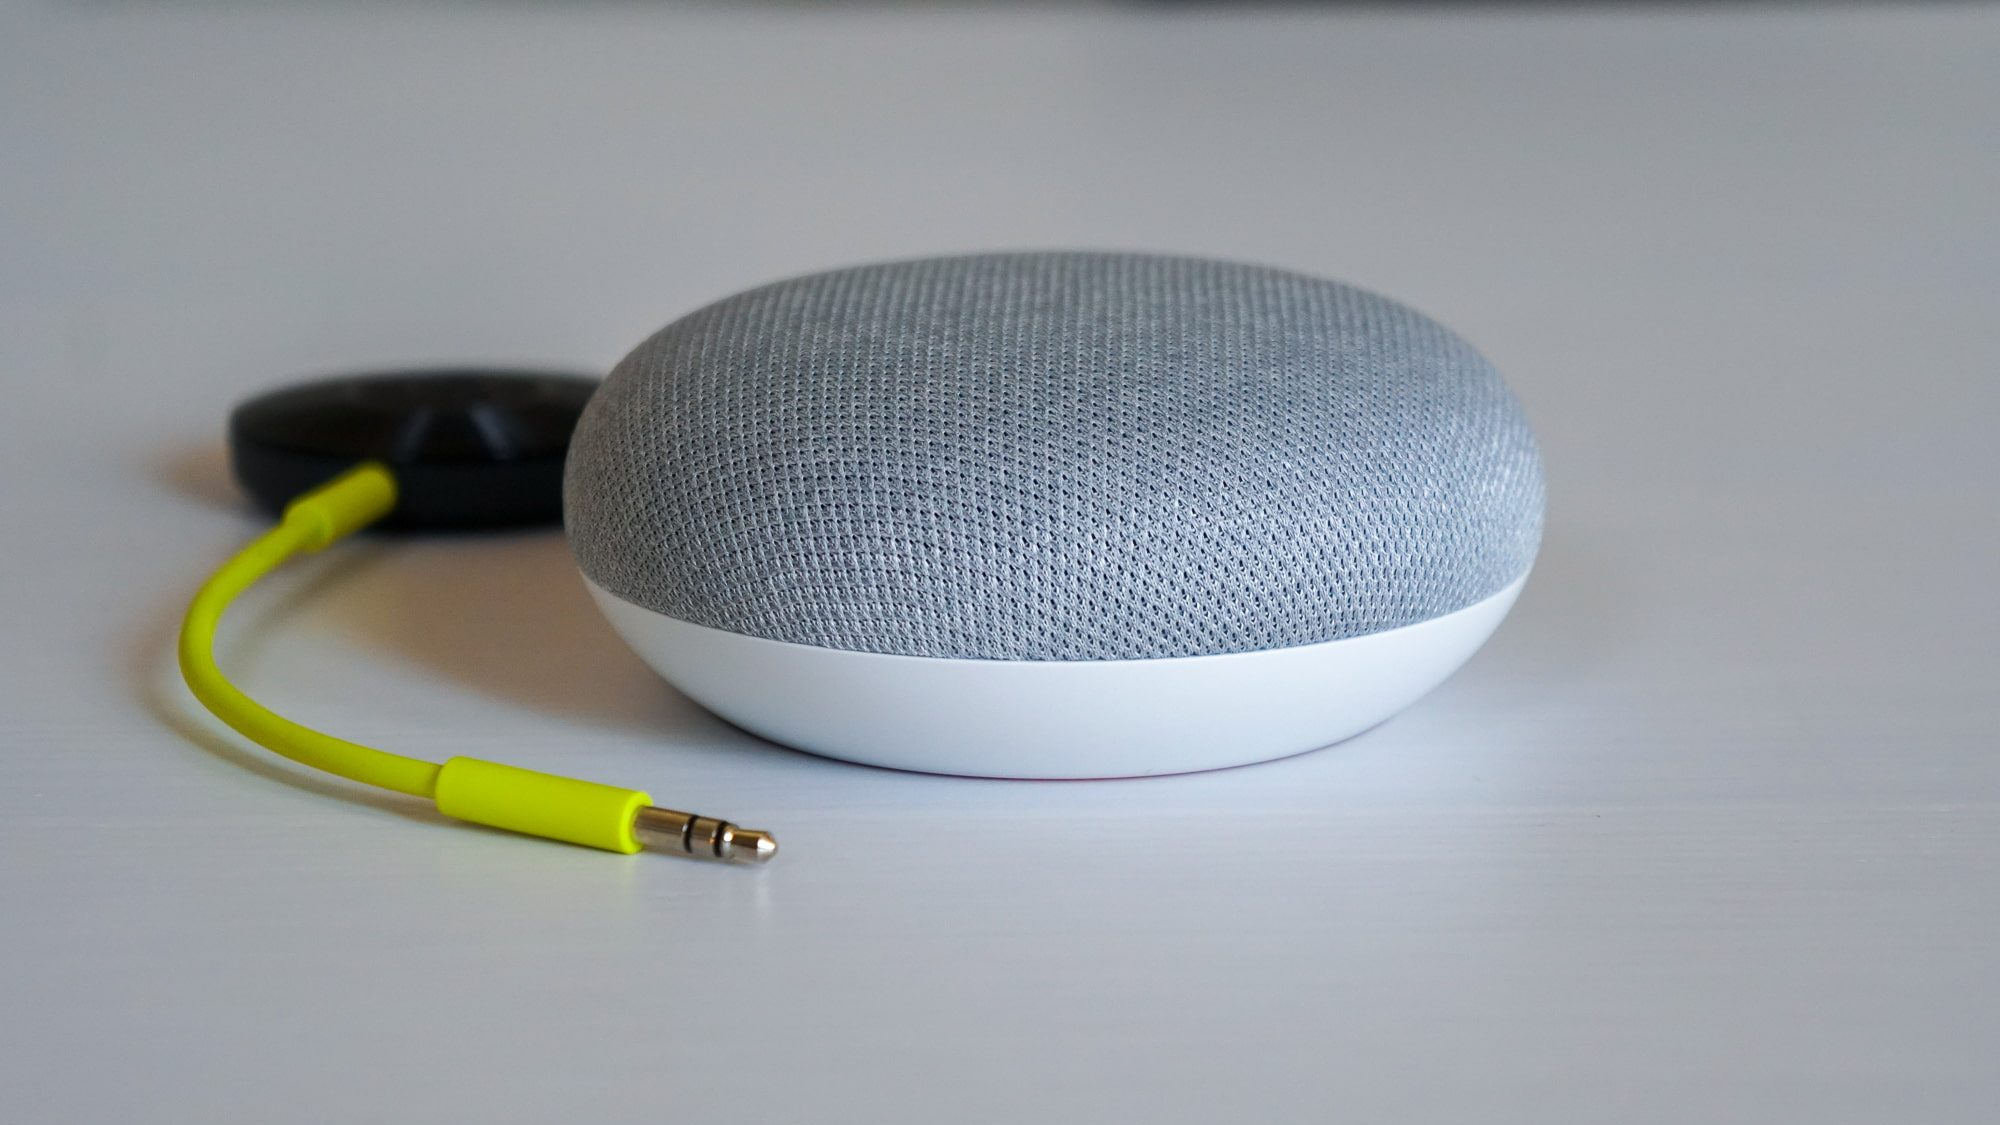 Rumored Nest Mini could fill void left by Chromecast Audio demise